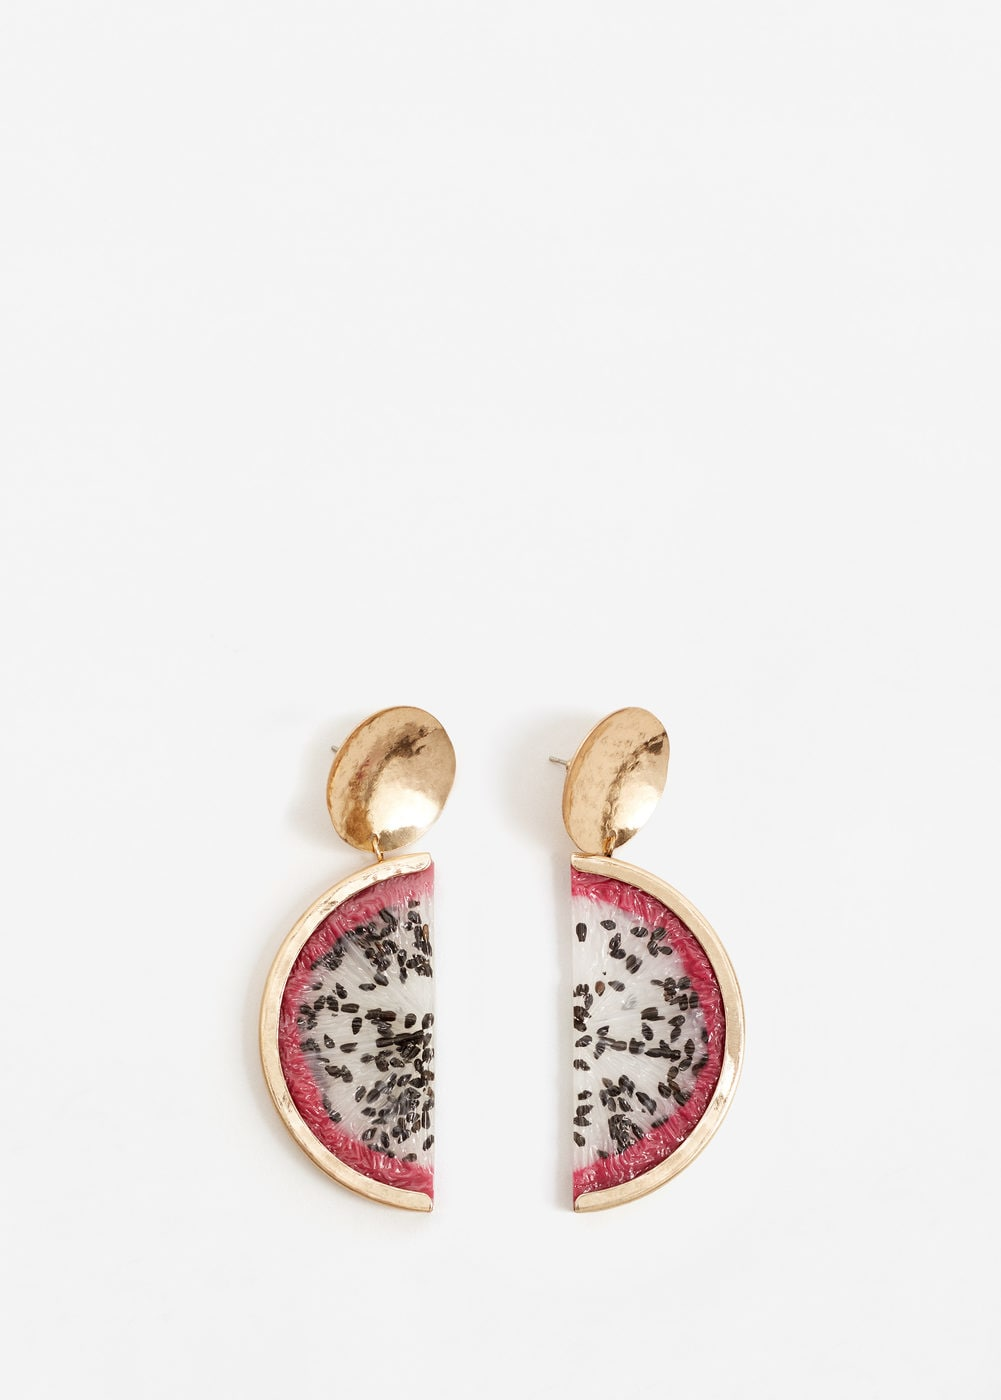 Watermelon earrings.jpg